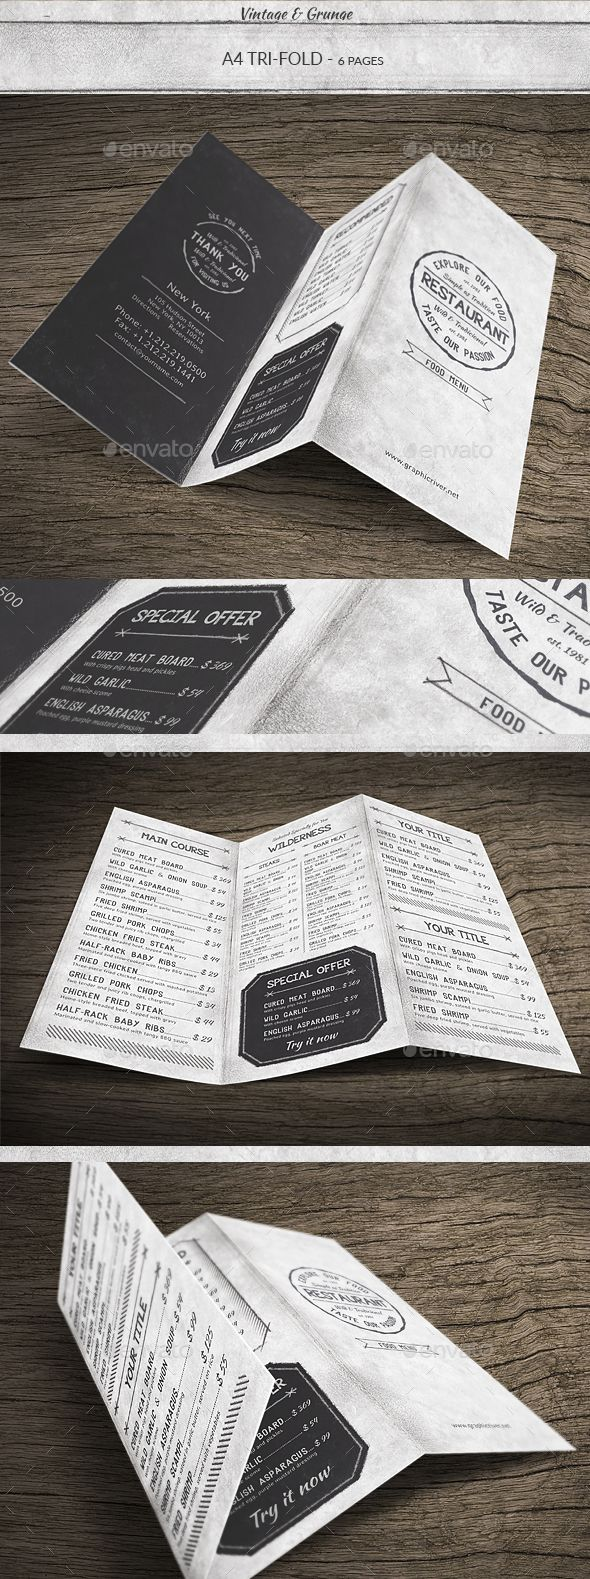 Vintage A Trifold Menu Menu Templates Menu And Template - Folded menu template